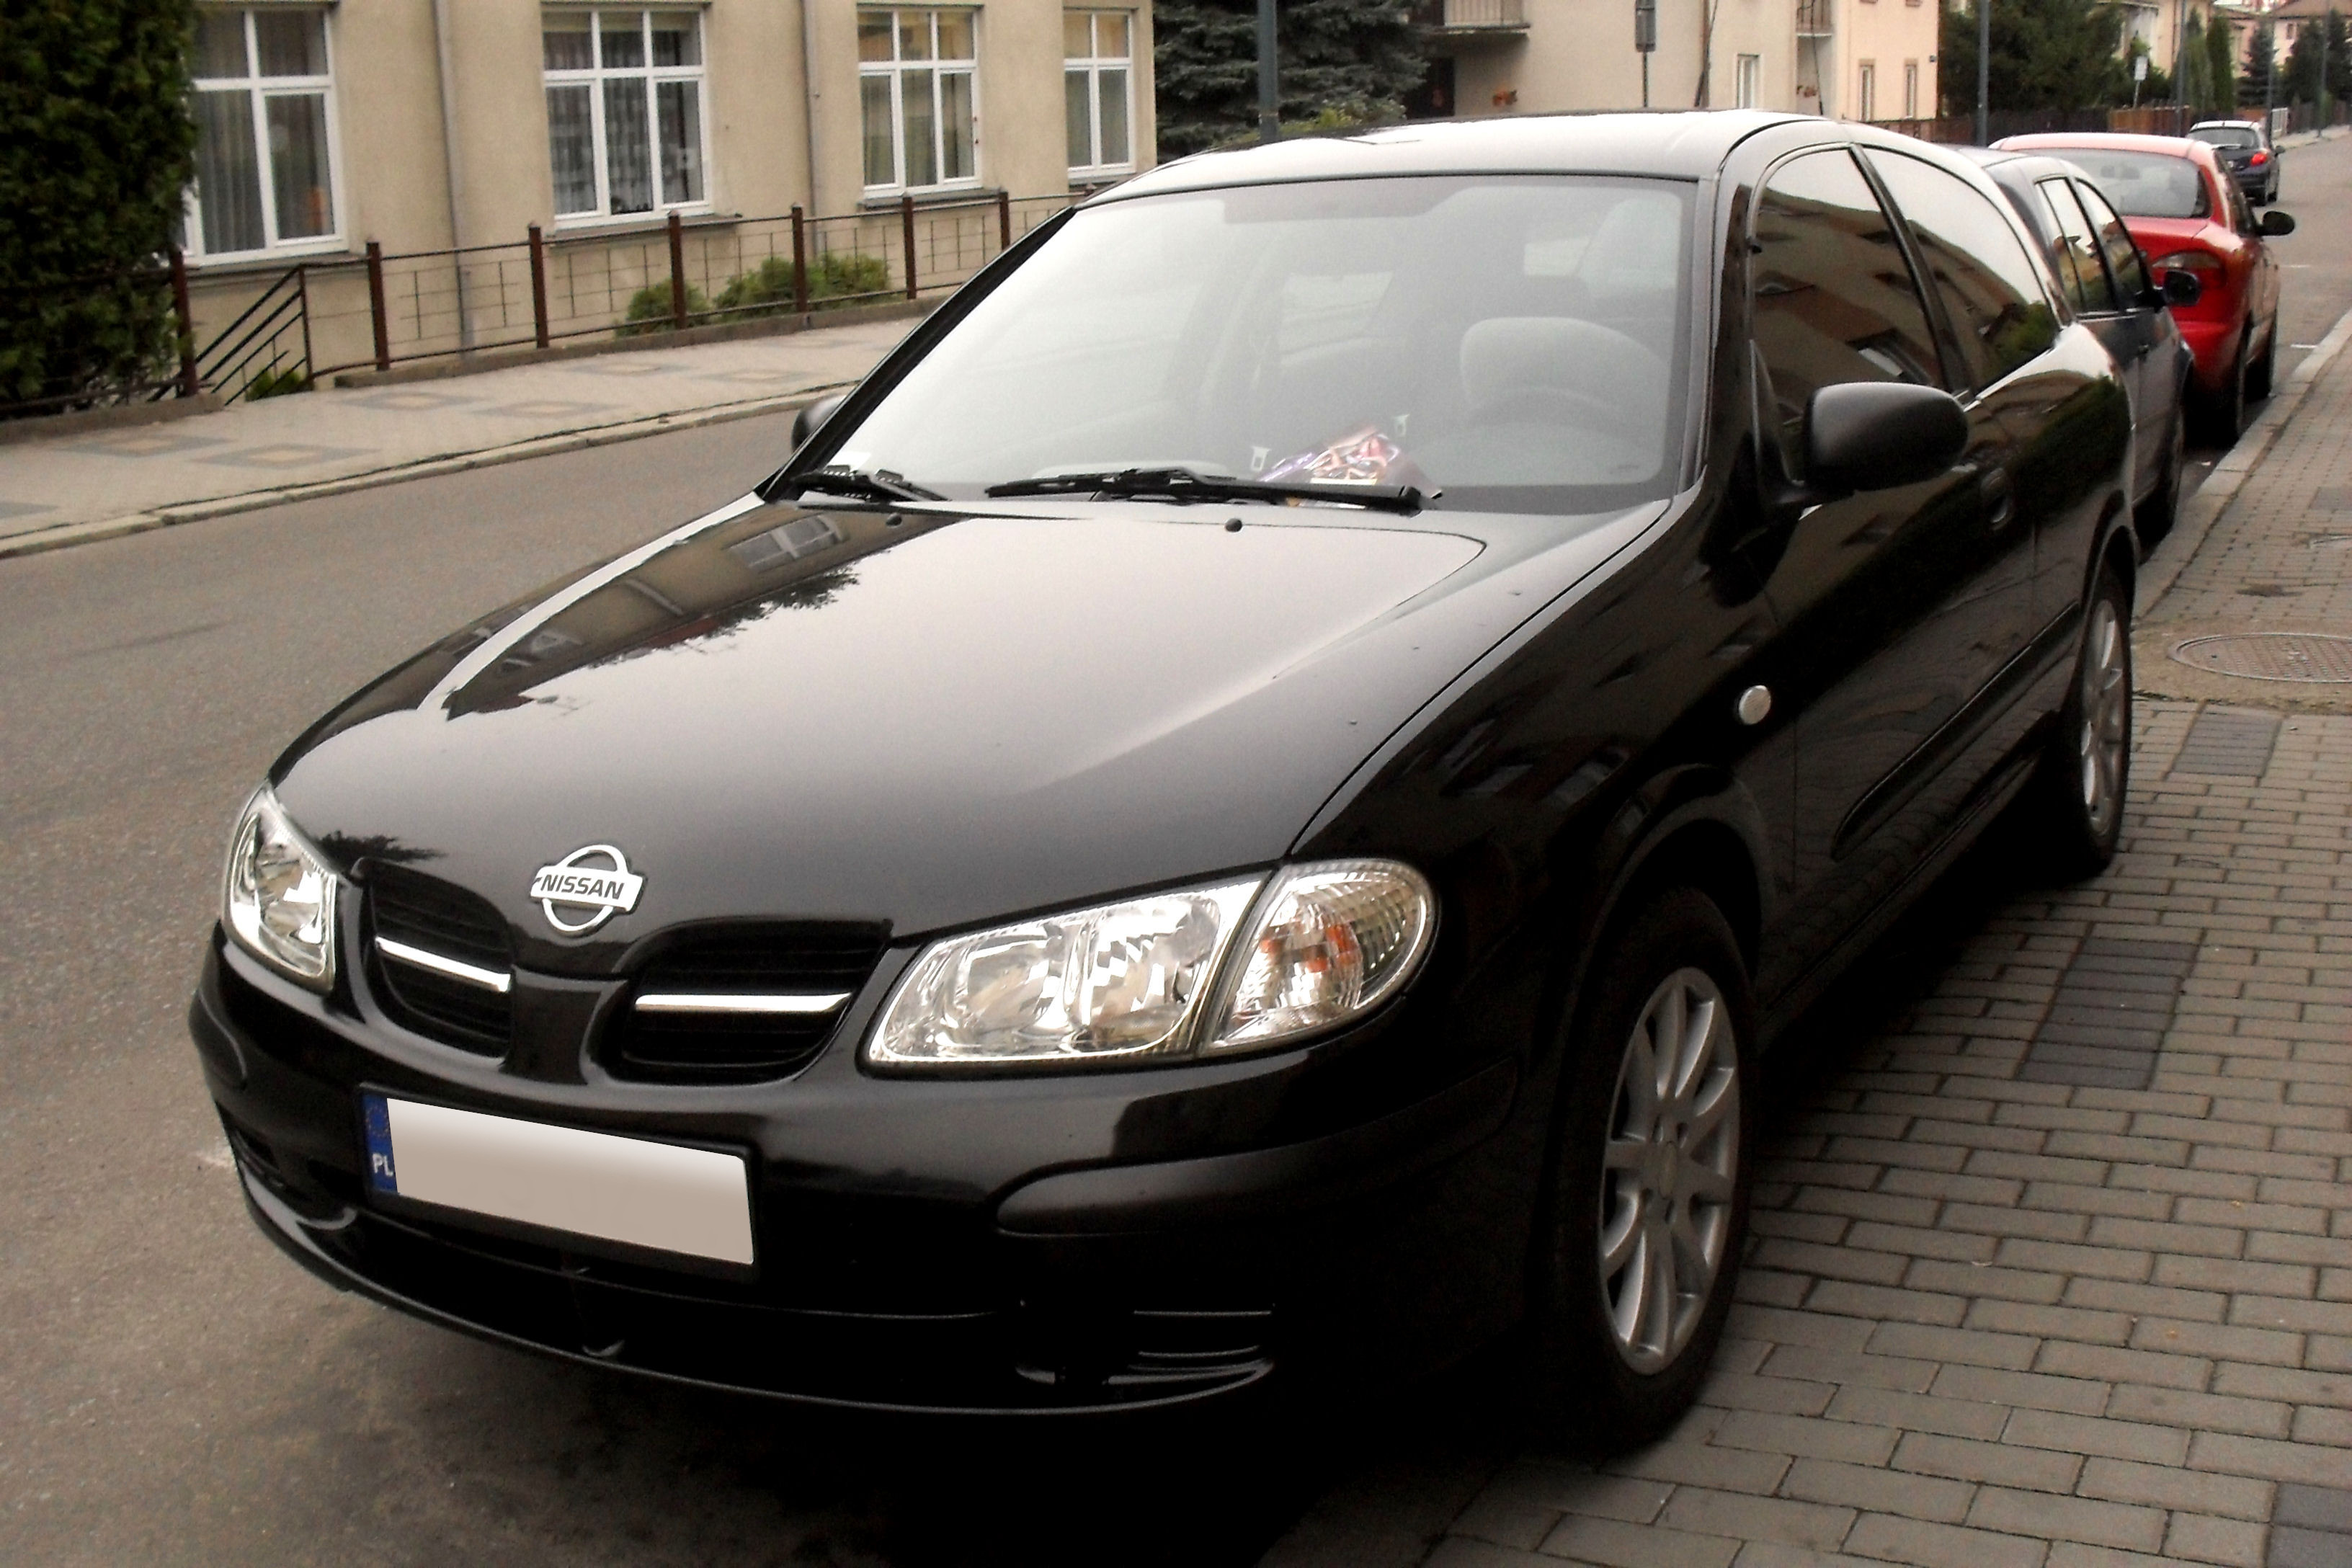 Almera N16 Tuning Top Car Release 2019 2020 Nissan Nismo Black Filenissan Jaslo Wikimedia Commons